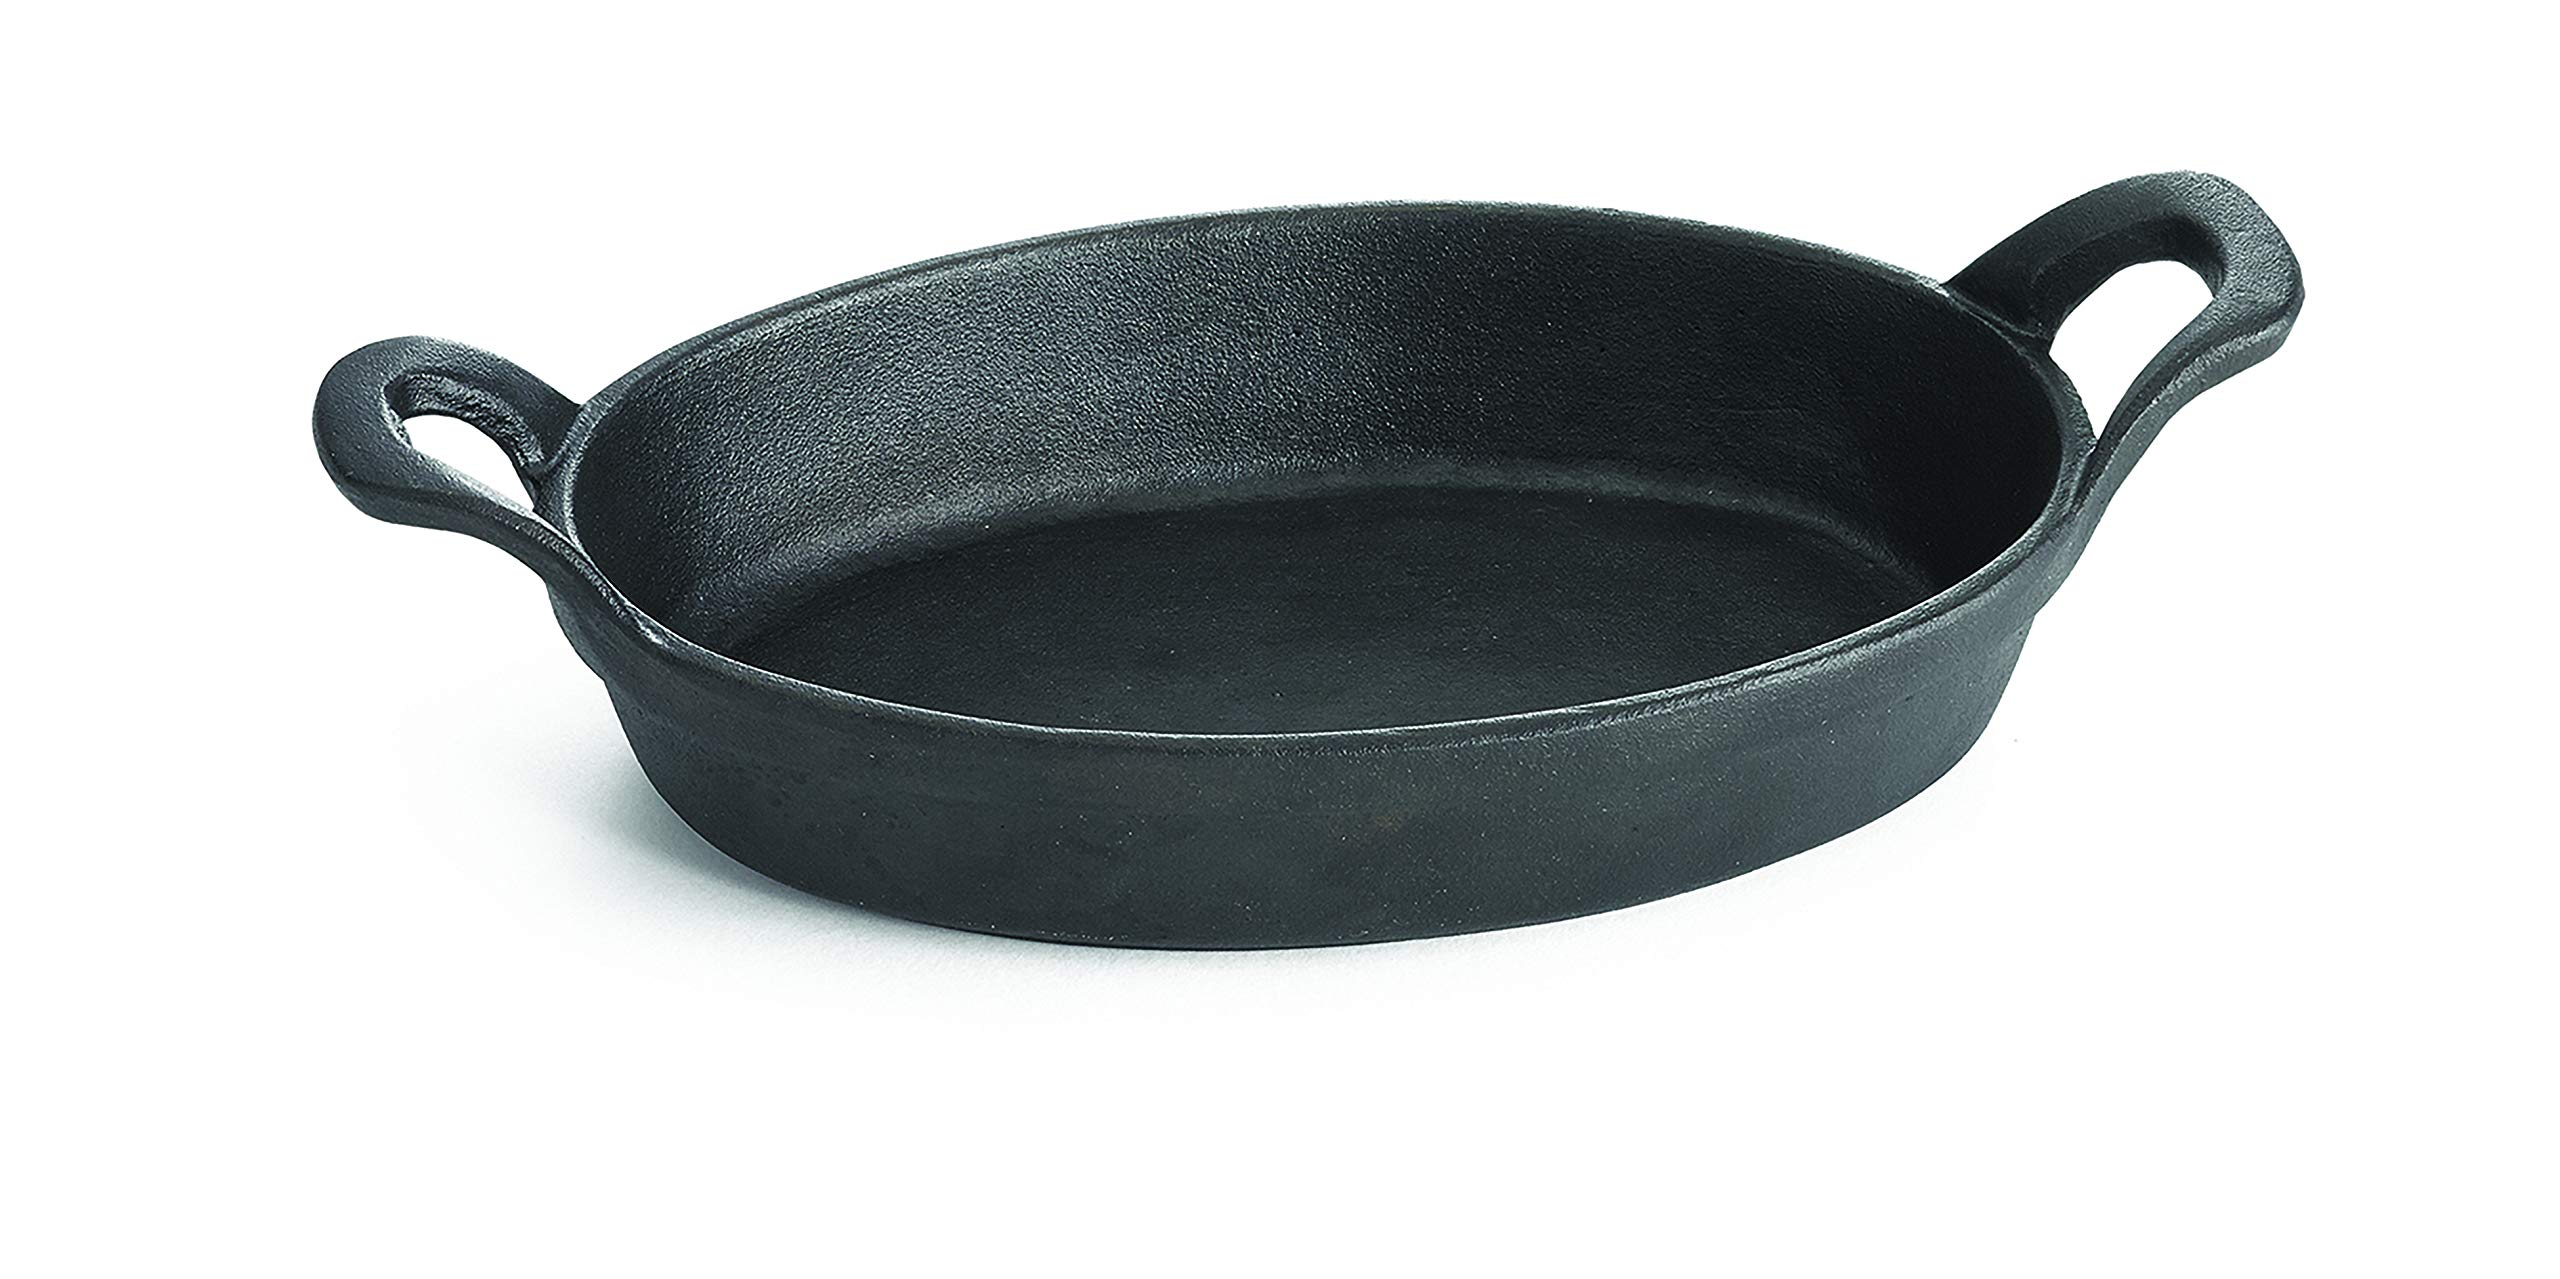 TableCraft CW30100 Mini Oval Au Gratin Cookware, 9 oz, Black by Tablecraft